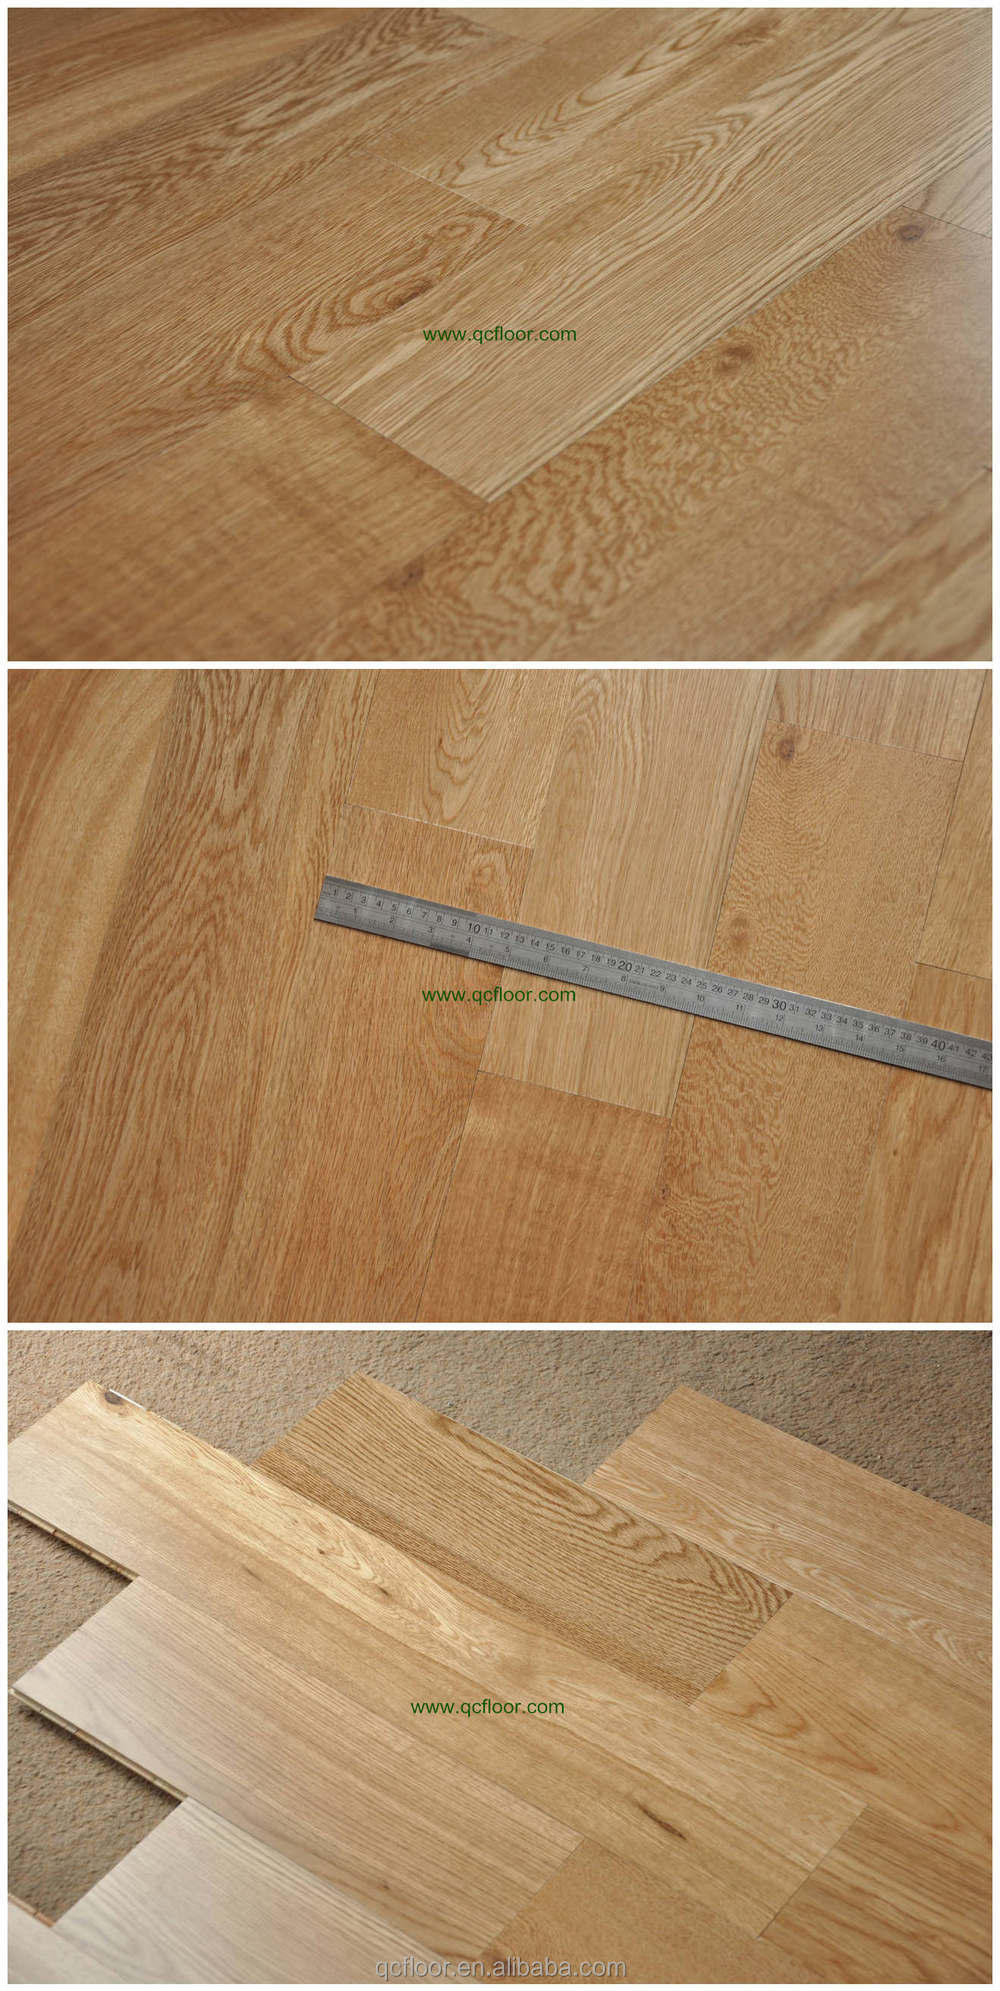 Uv lacquered white oak engineered flooring cheap wood for Cheap engineered wood flooring